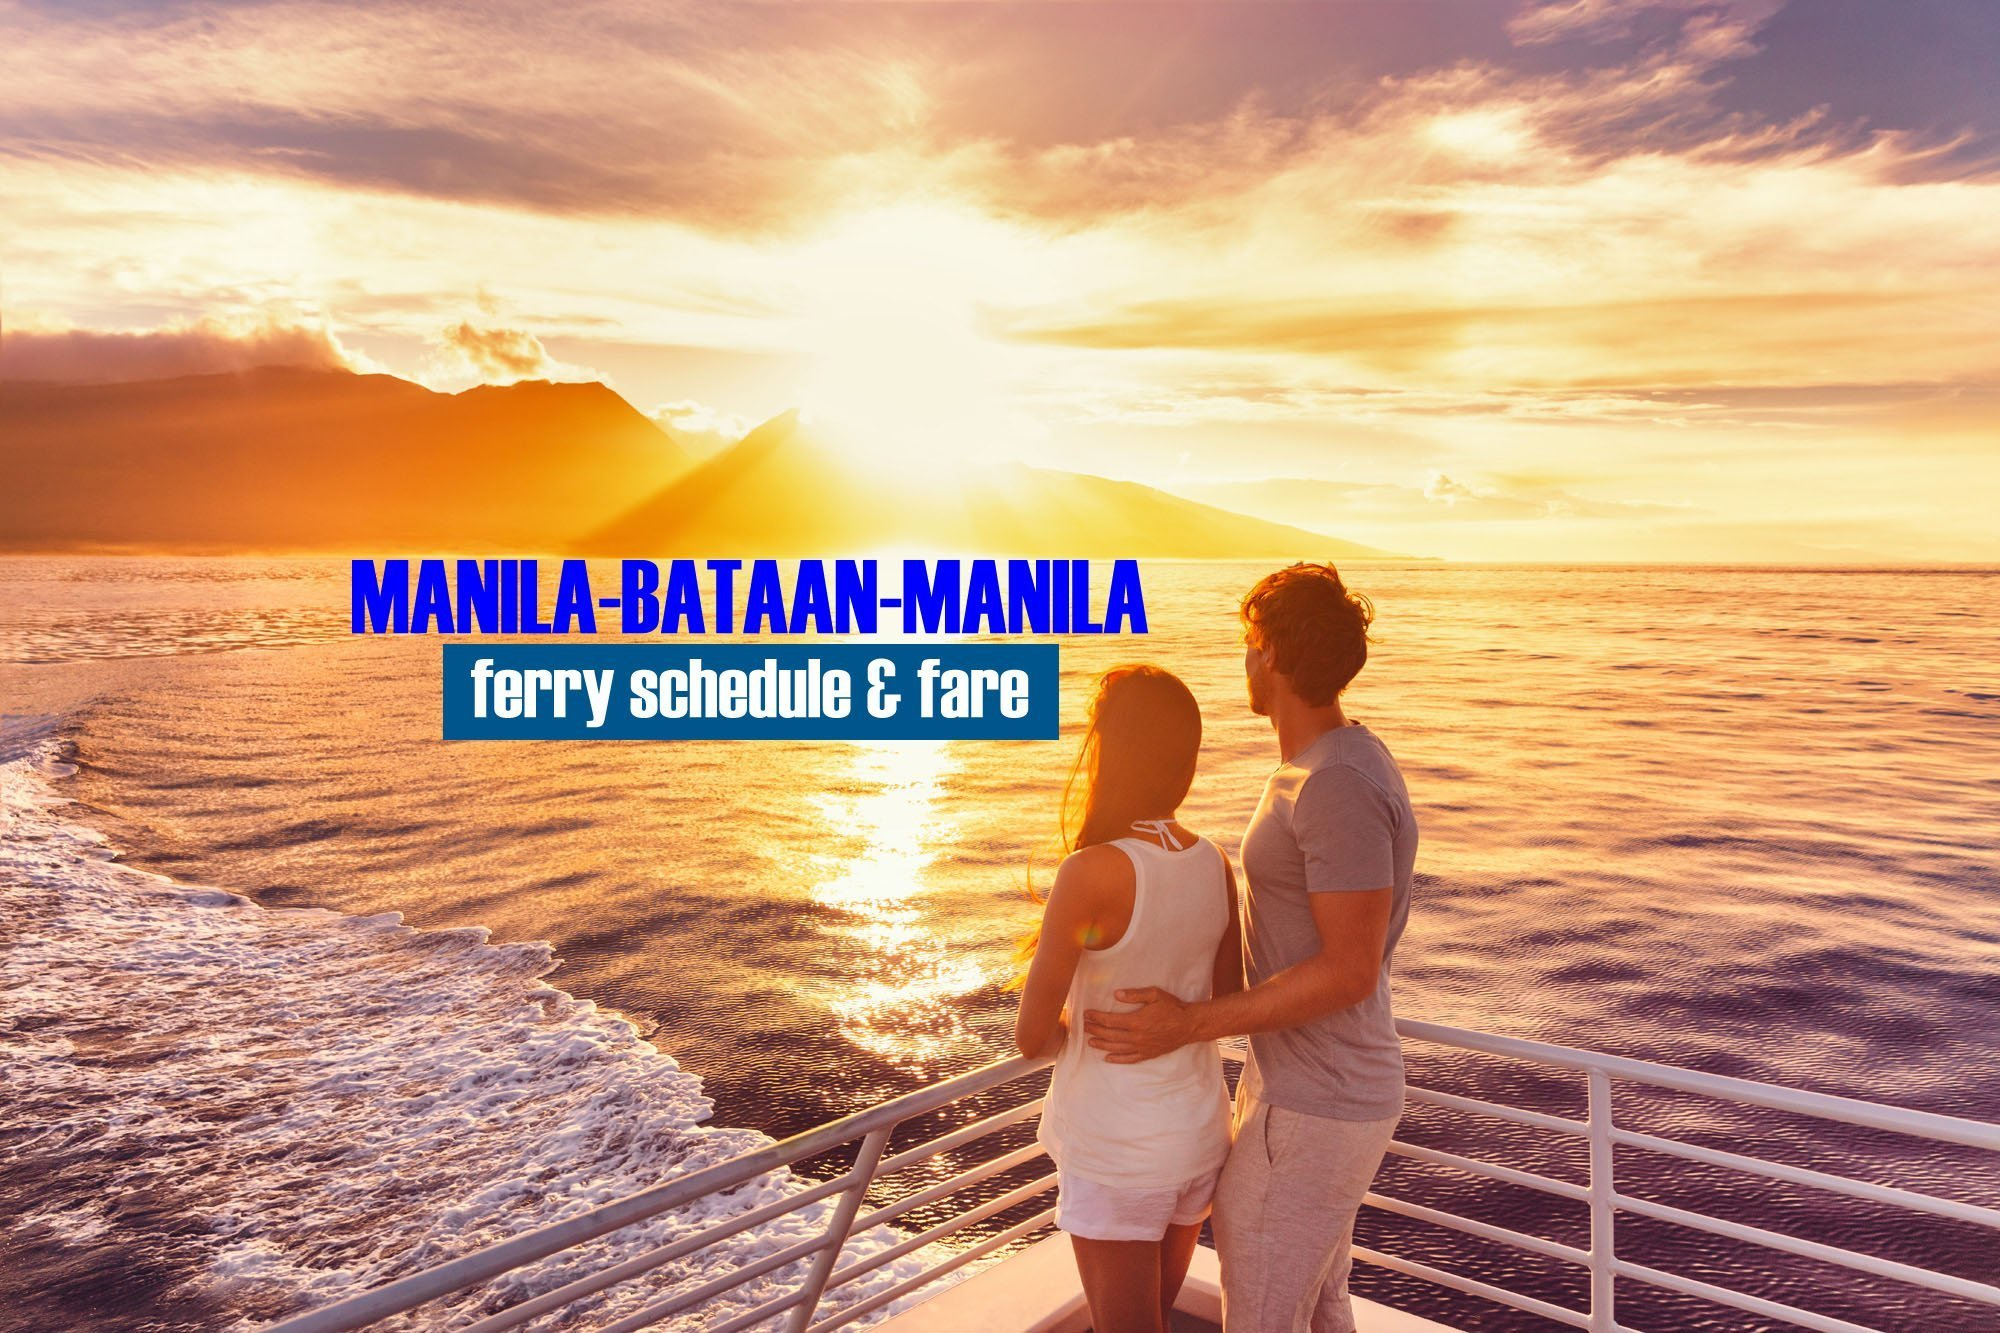 2019 Ferry Schedule: Manila to Bataan